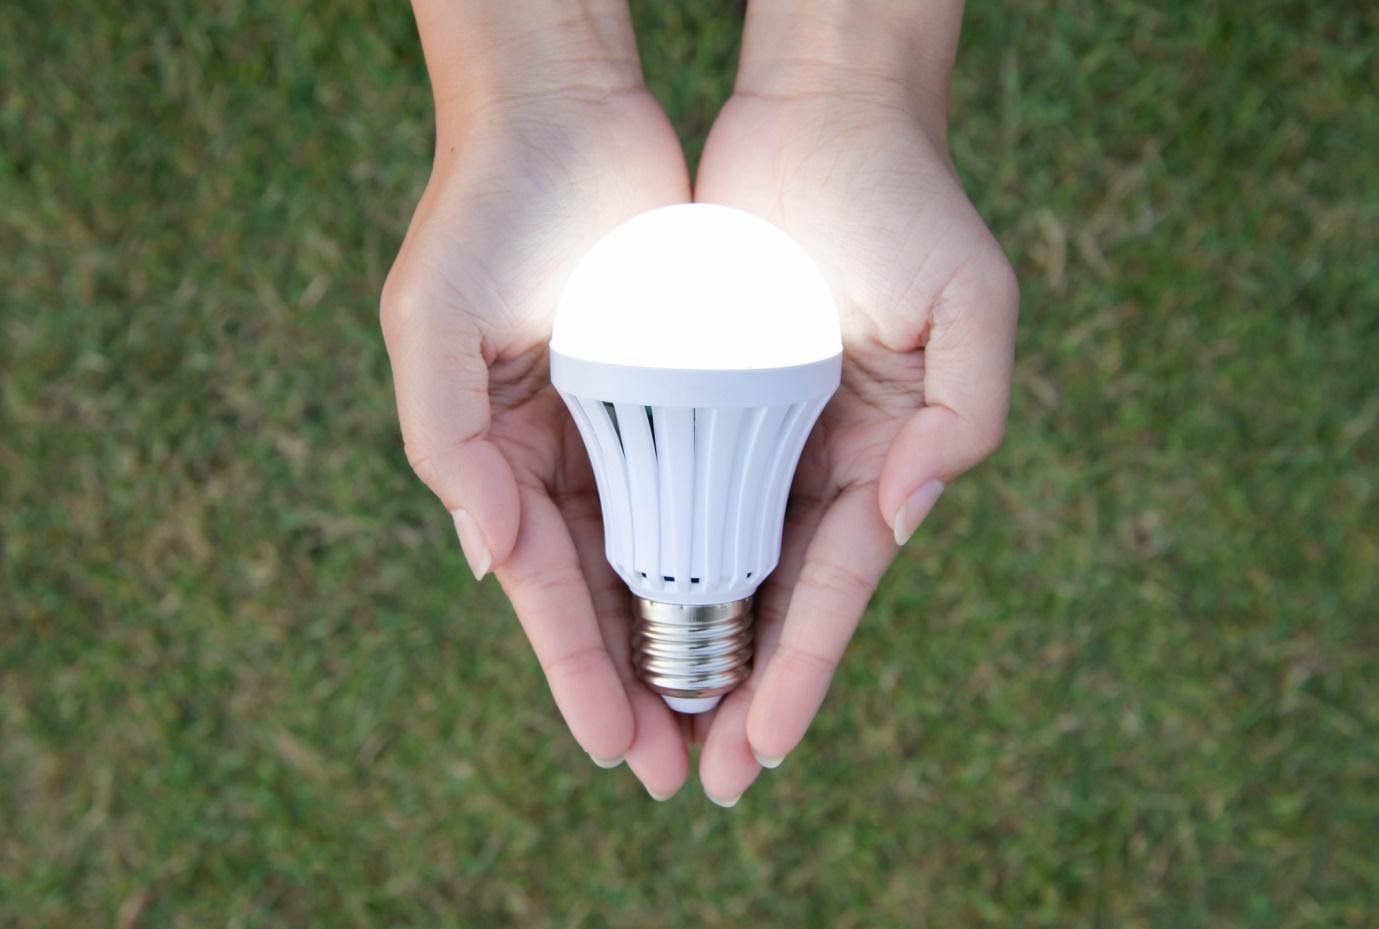 Make Your Home Smart With These 4 Energy-Efficient Technologies